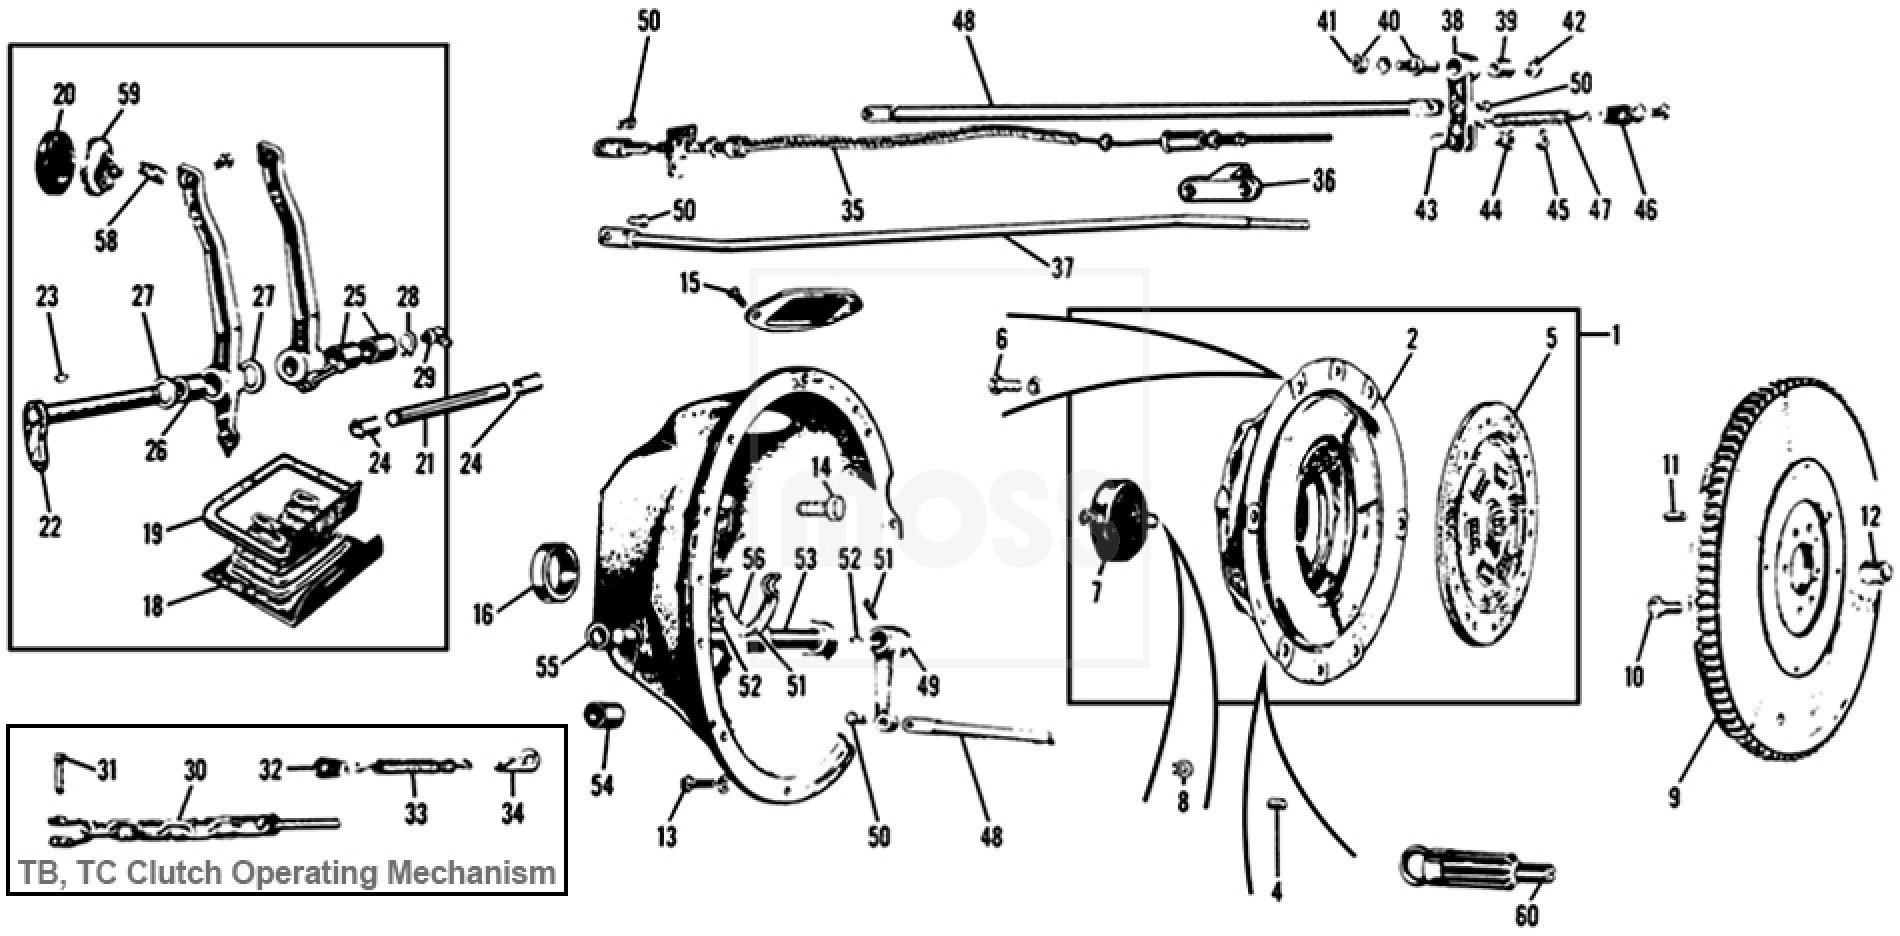 01 TYPES OF CLUTCHES USED IN TRANSMISSION SYSTEM